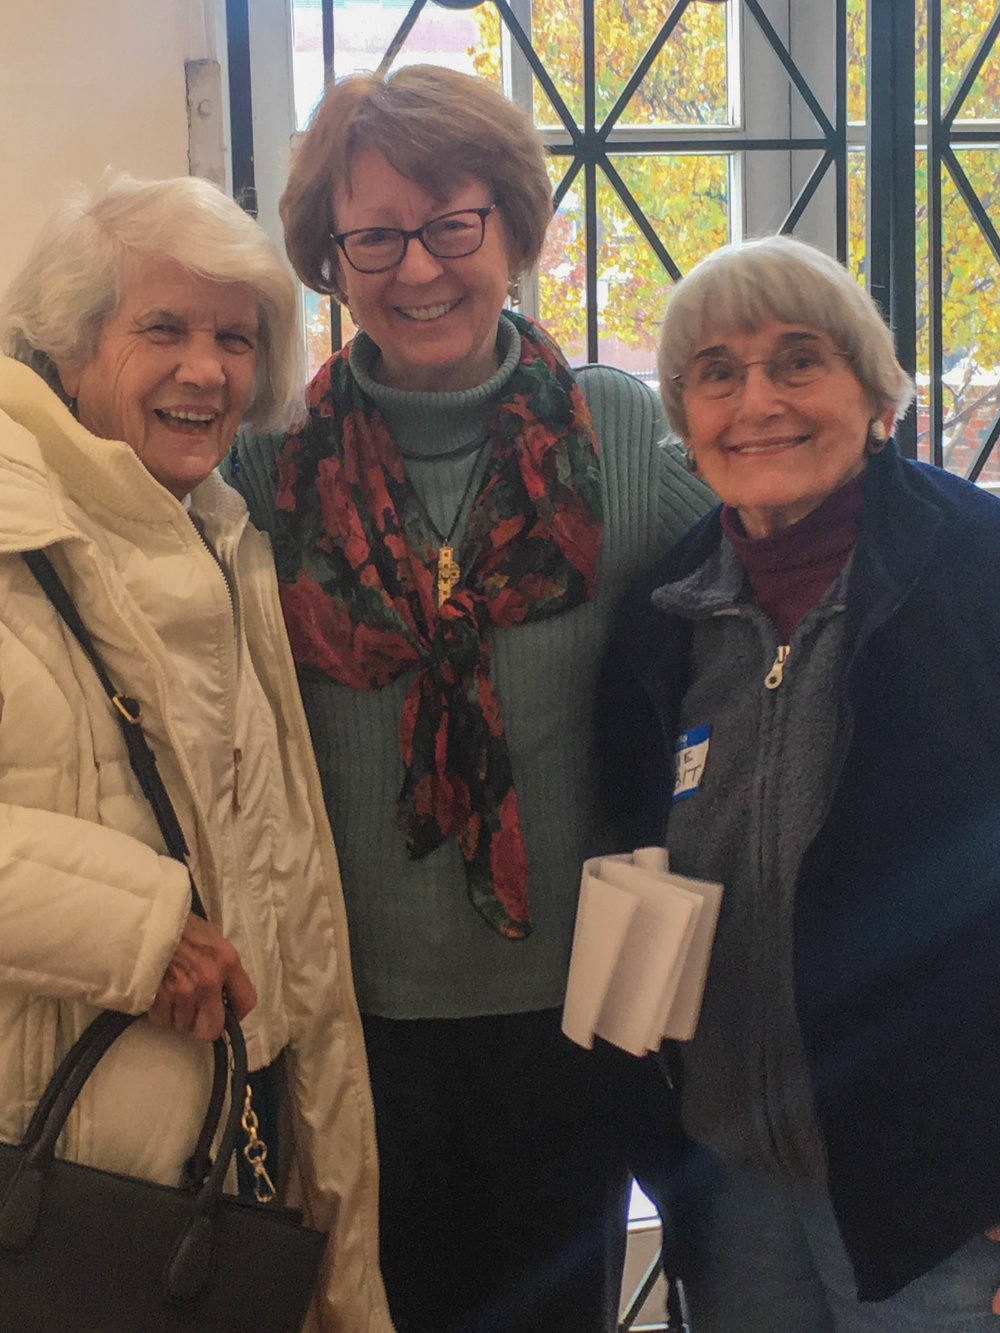 Past presidents Carol La Chiusa and Kathleen O'Connell with Julie Sabit, DSWPS member who also oversees the garden at the Scarab Club